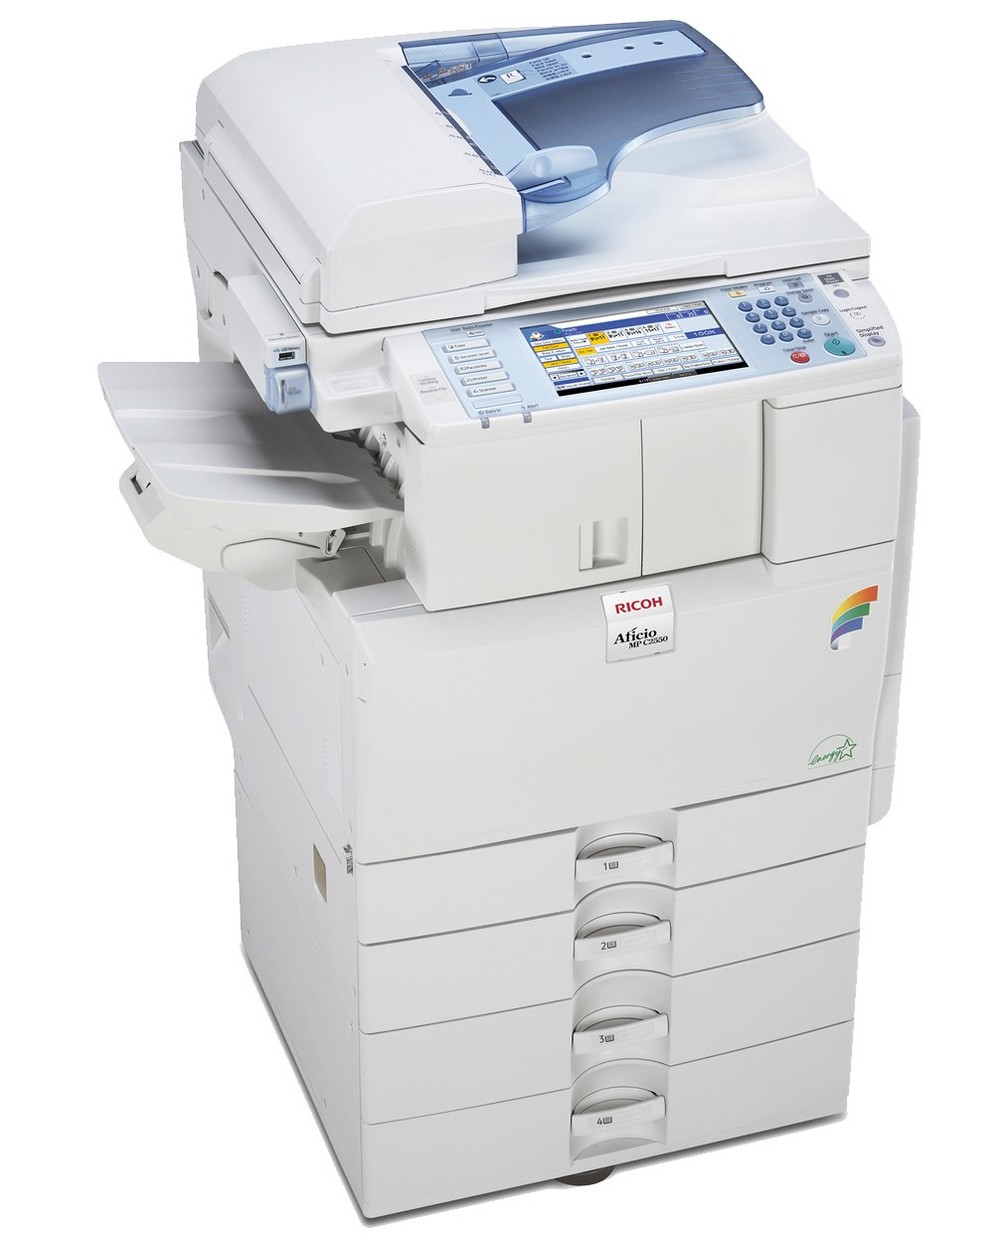 Ricoh Aficio MP C2051 / C2551